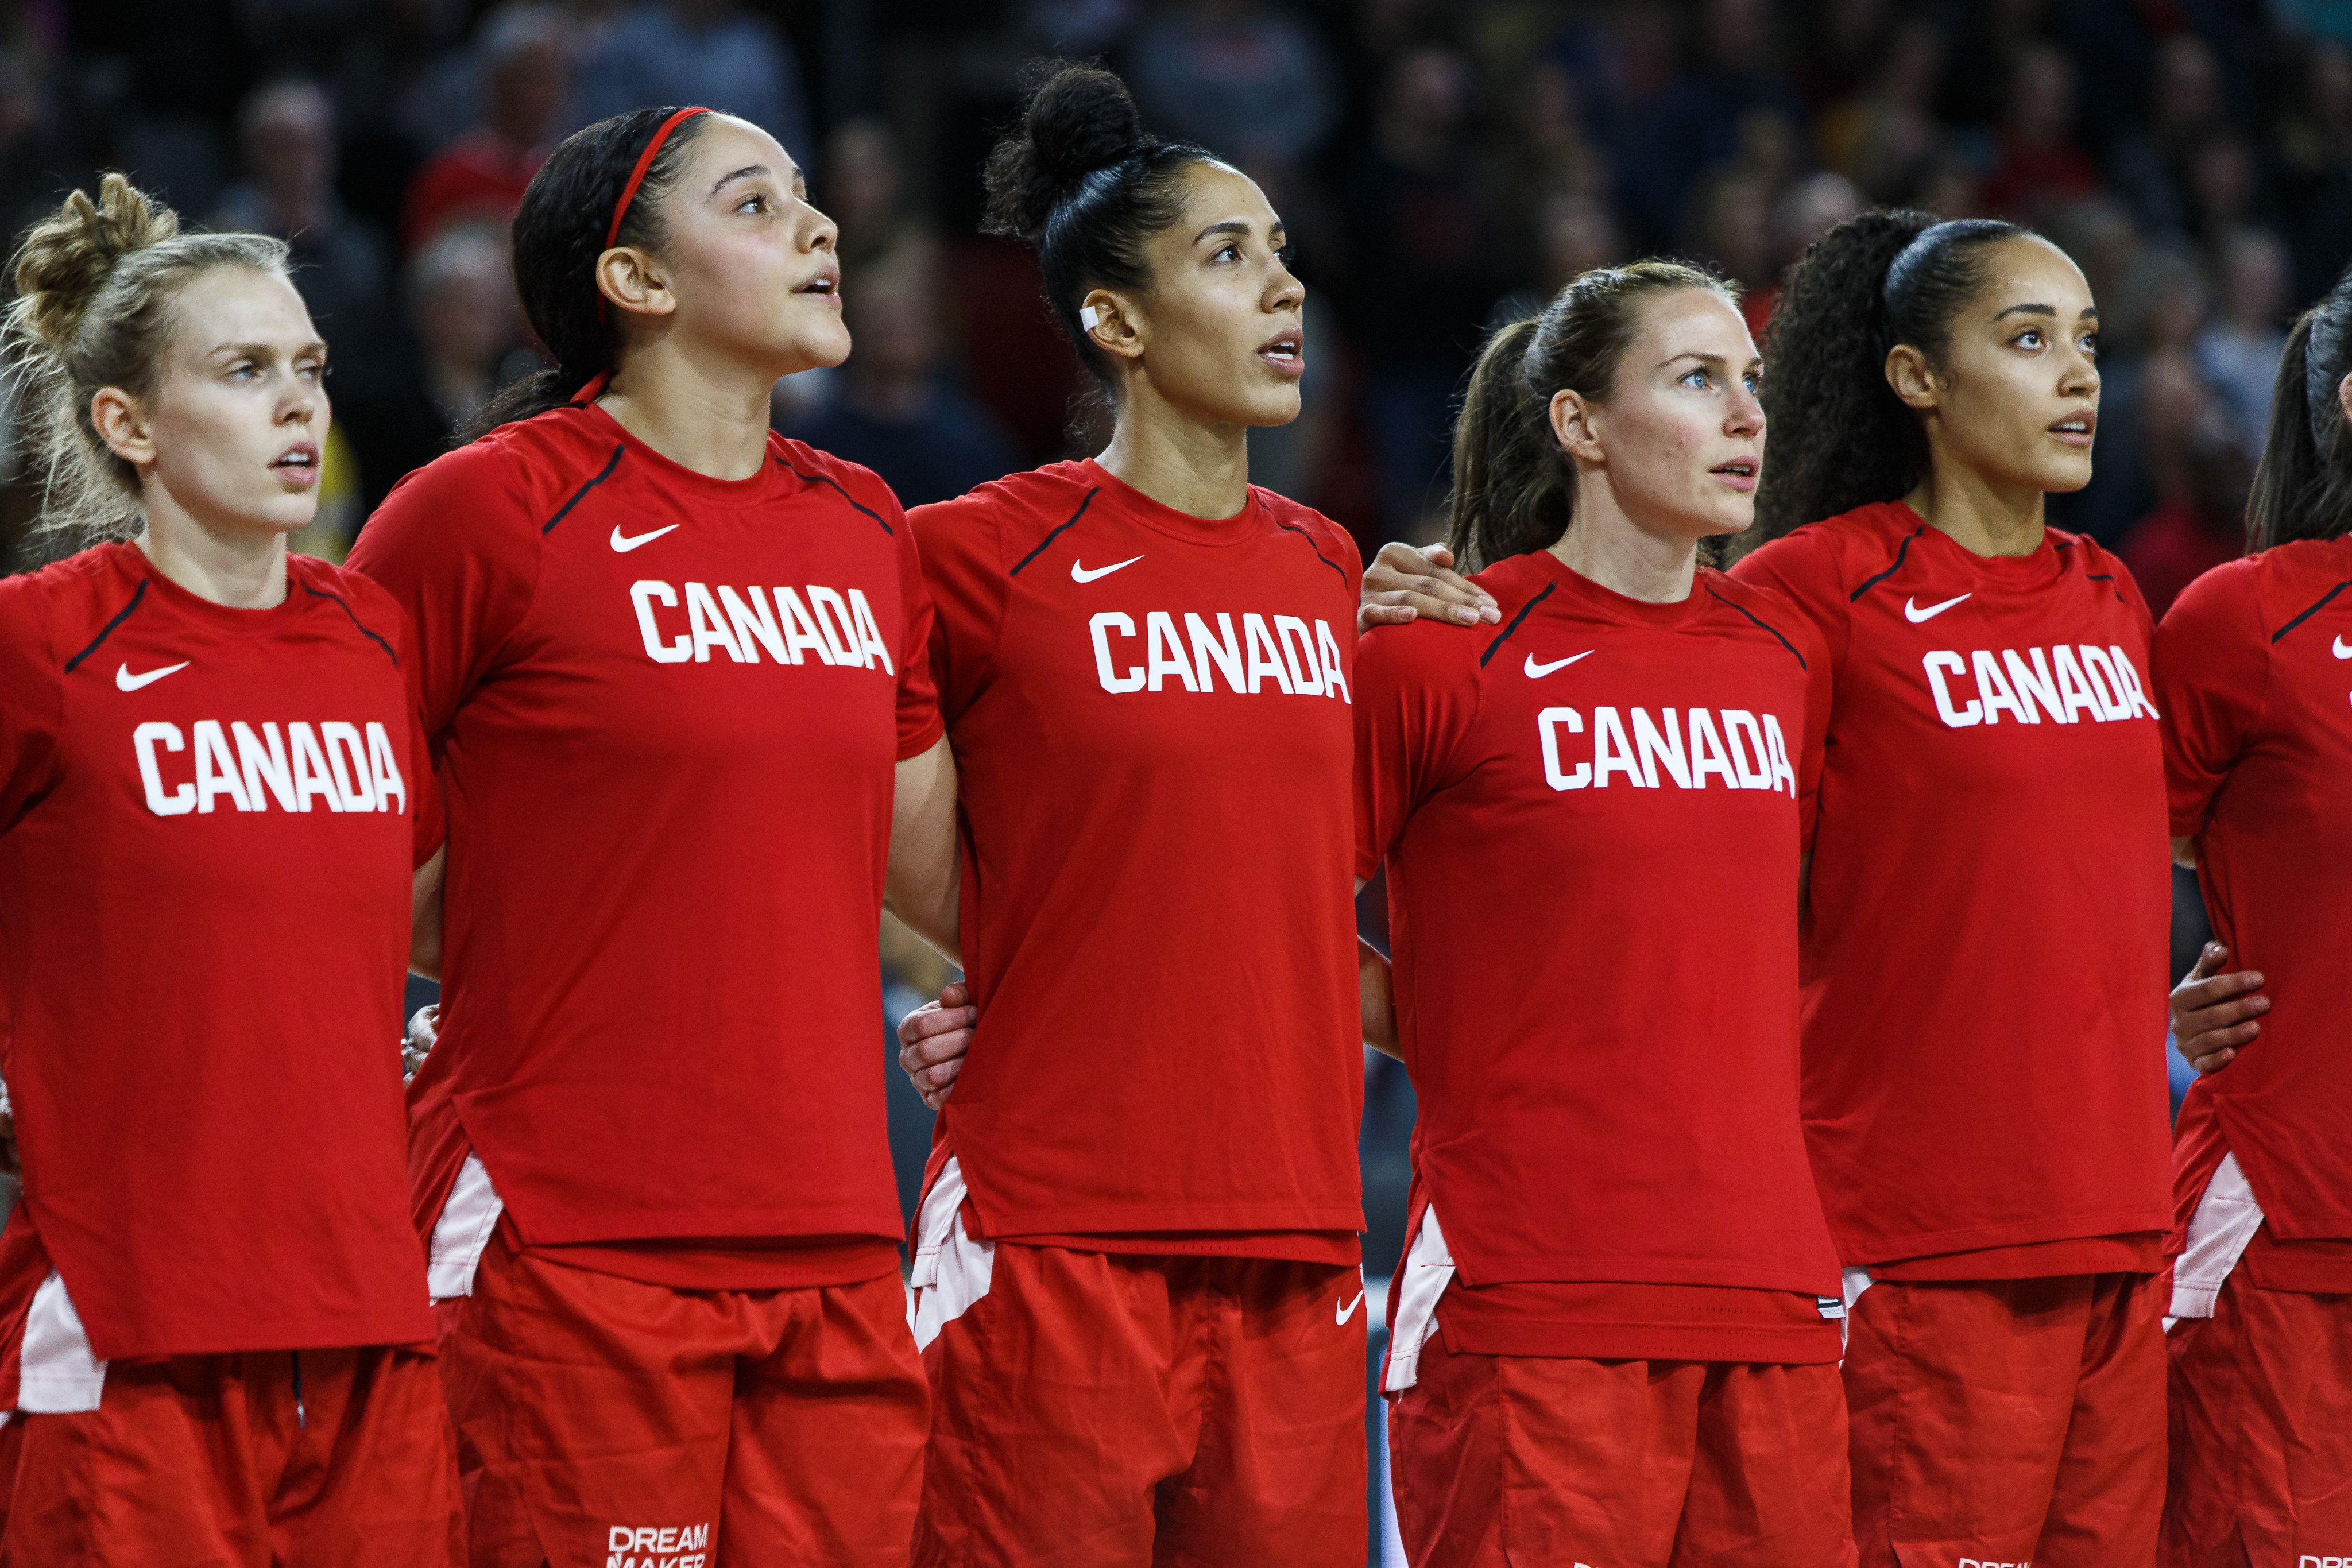 Senior Women's National Team Announced Ahead of FIBA Women's Olympic Qualifying Tournament